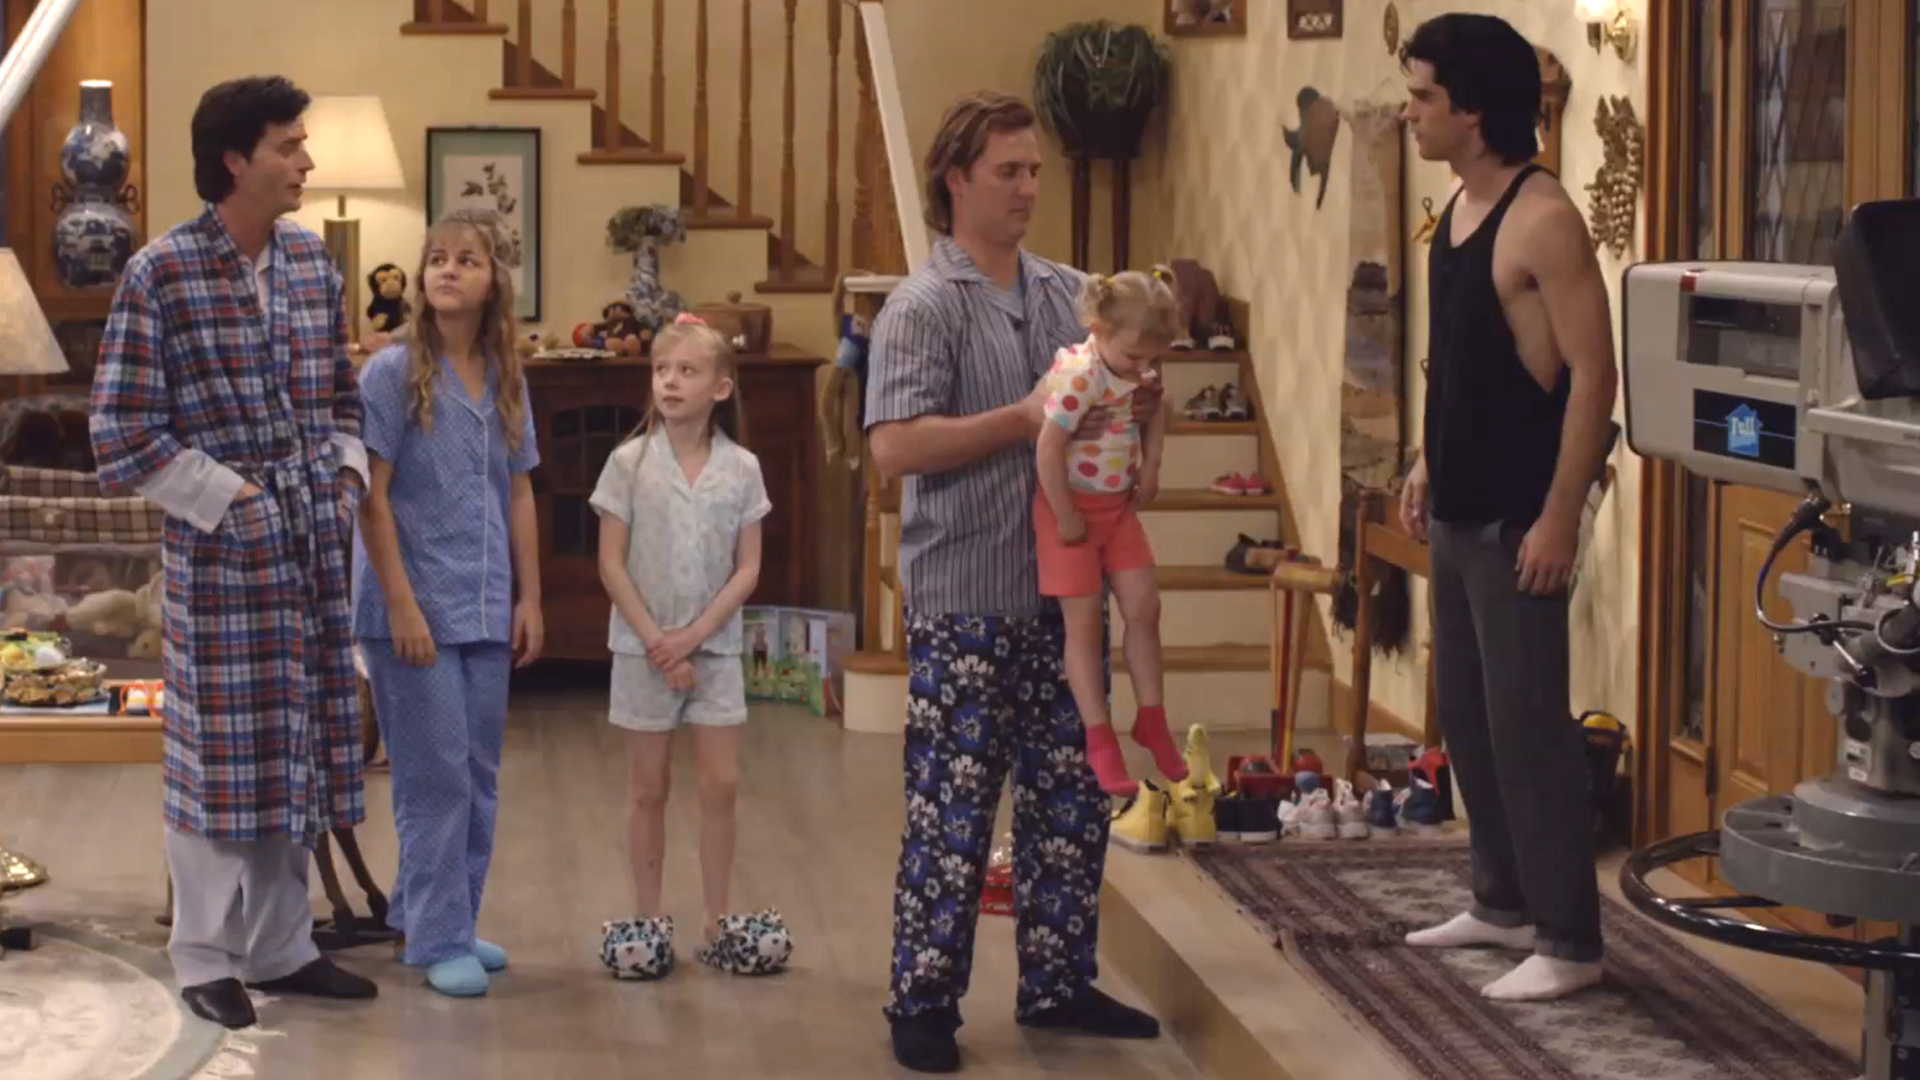 39 unauthorized full house story 39 clip gives sneak peek at for Fully house